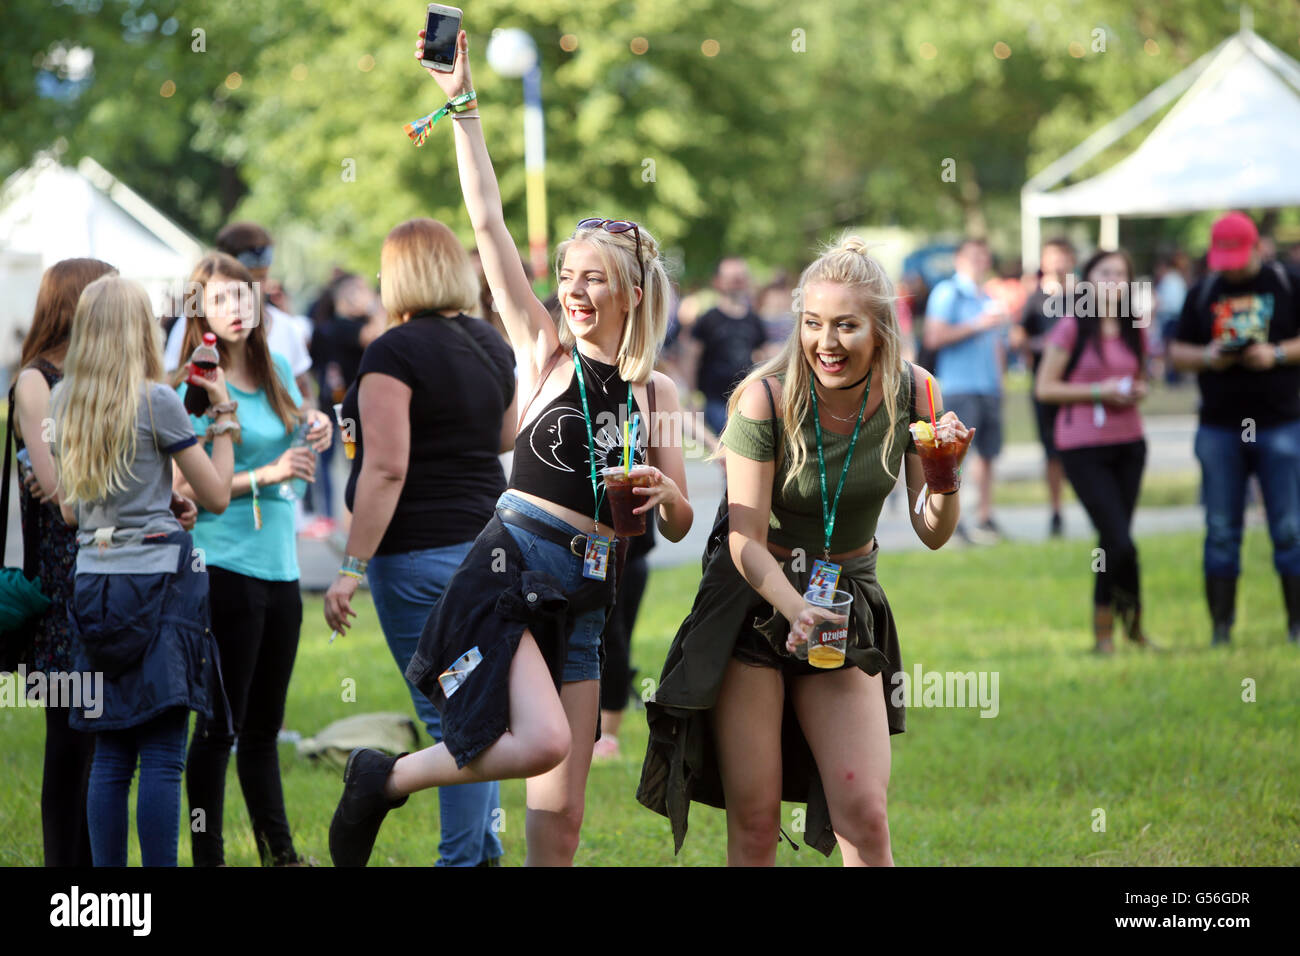 Zagreb, Croatia. 20th June, 2016. : Ambience and atmosphere on the first day of 11th INmusic festival located on Stock Photo